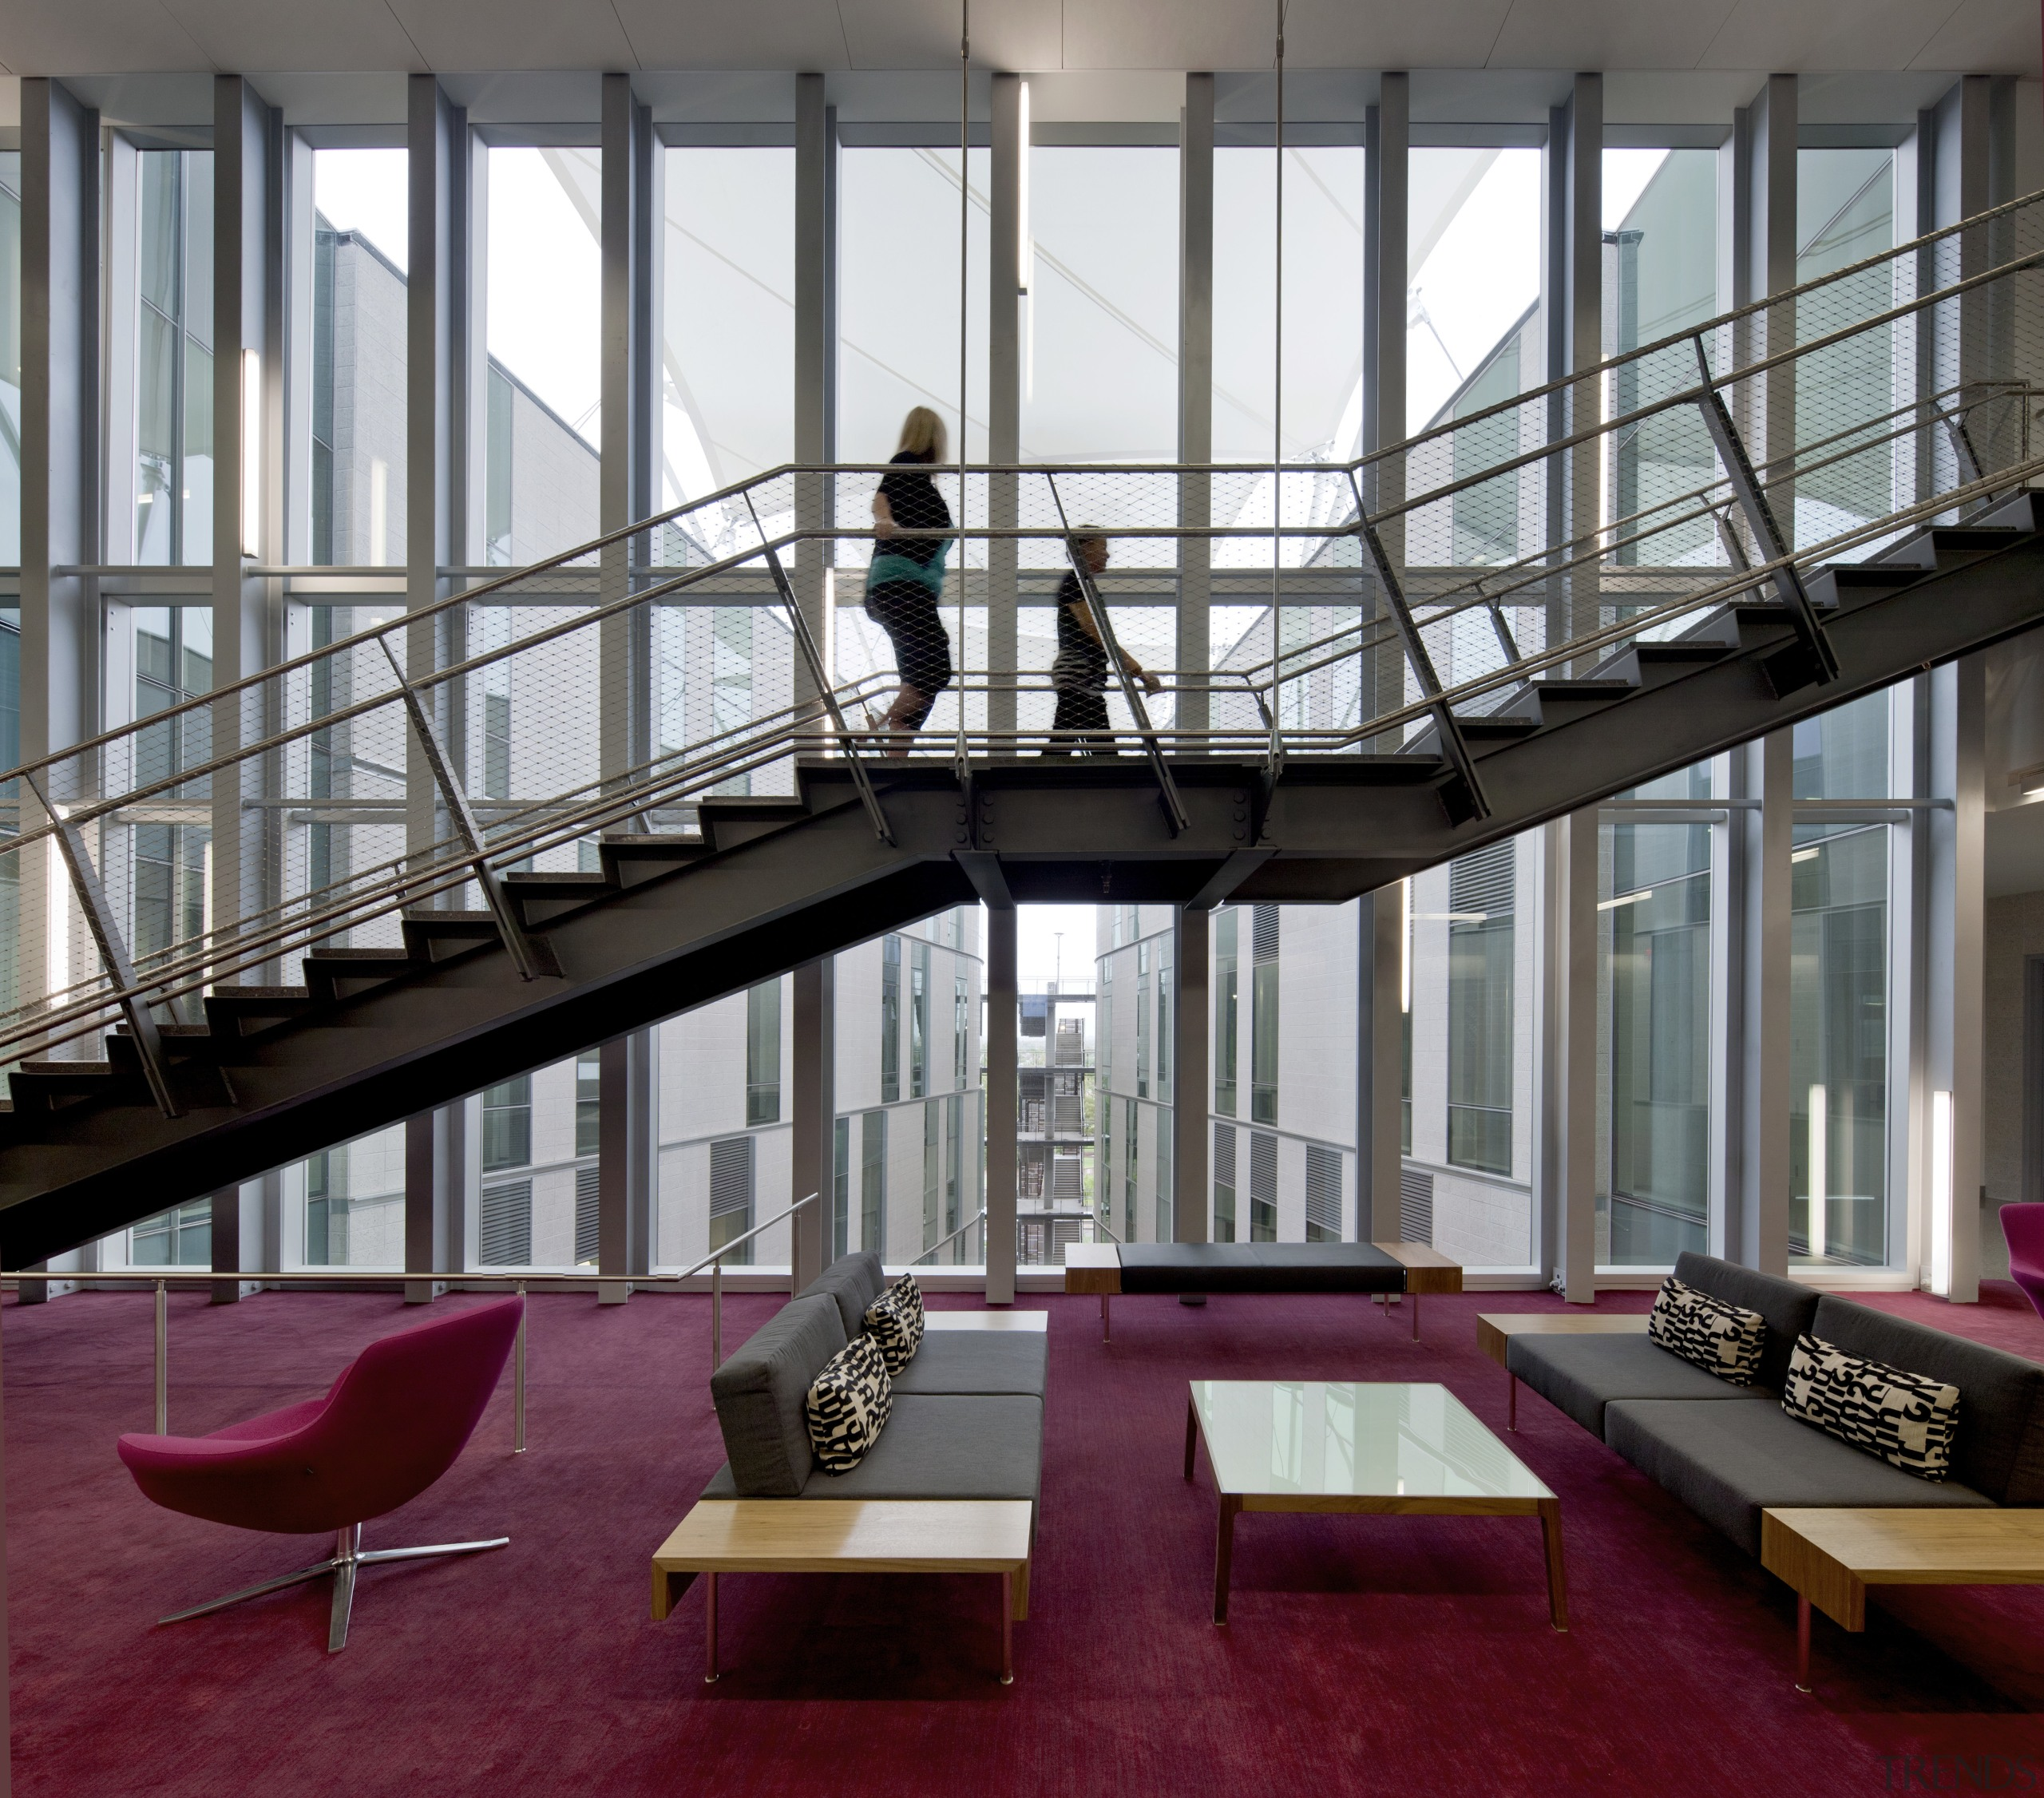 On this project, the main circulation stair between architecture, building, daylighting, interior design, stairs, structure, gray